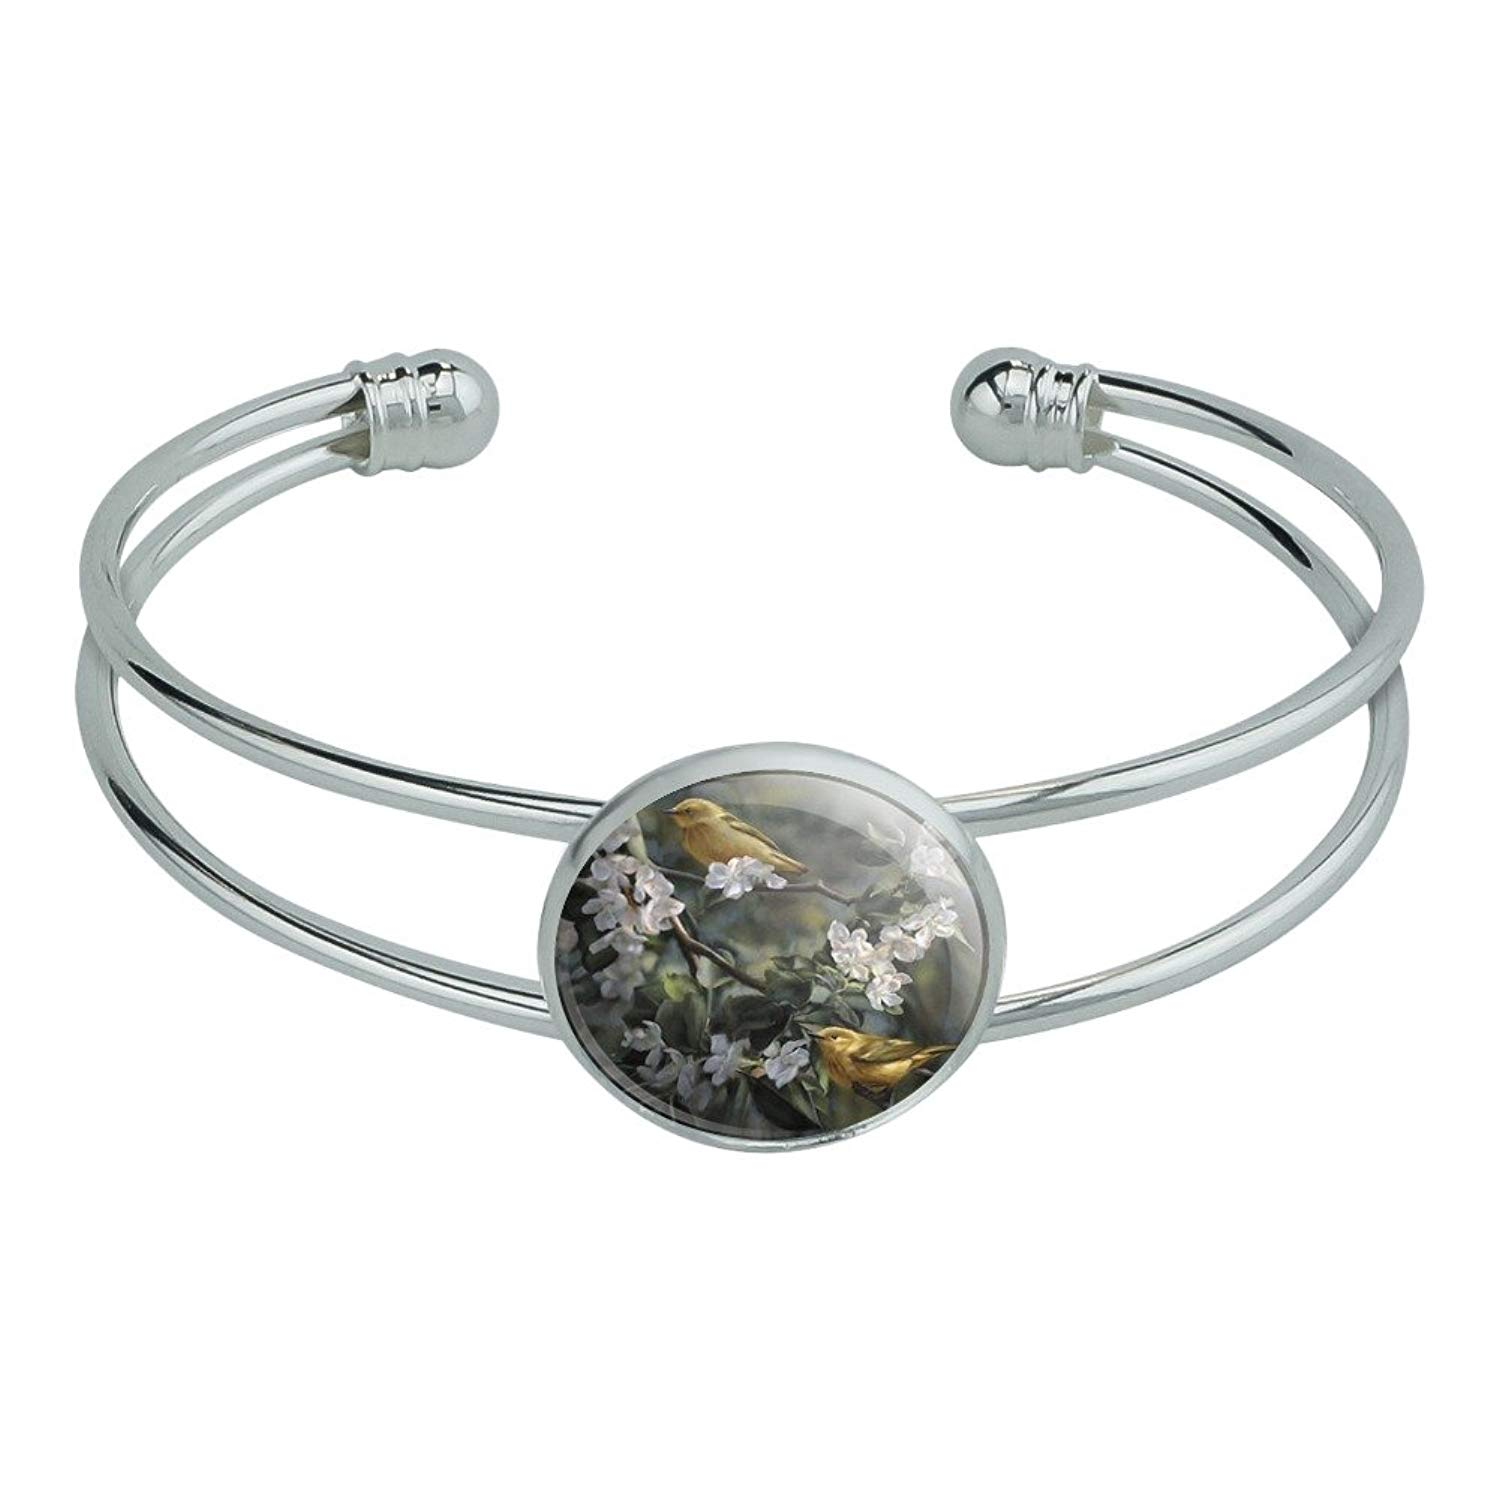 Graphics and More American Yellow Warblers Birds Novelty Silver Plated Metal Cuff Bangle Bracelet